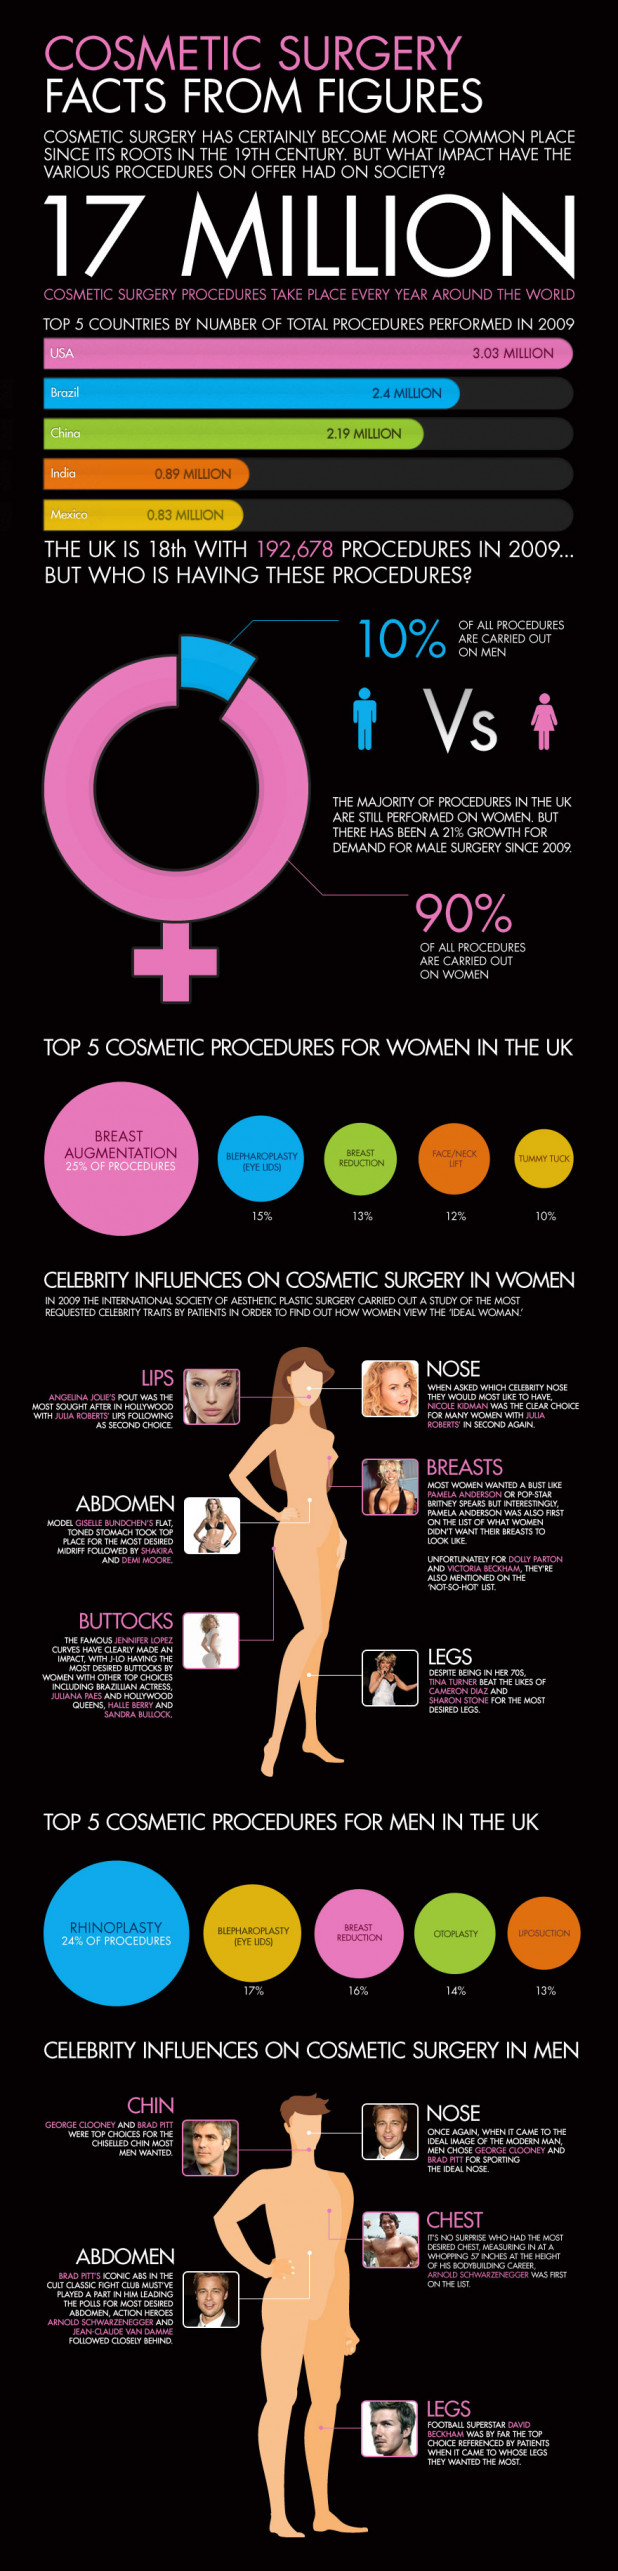 Cosmetic Surgery Facts From Figures